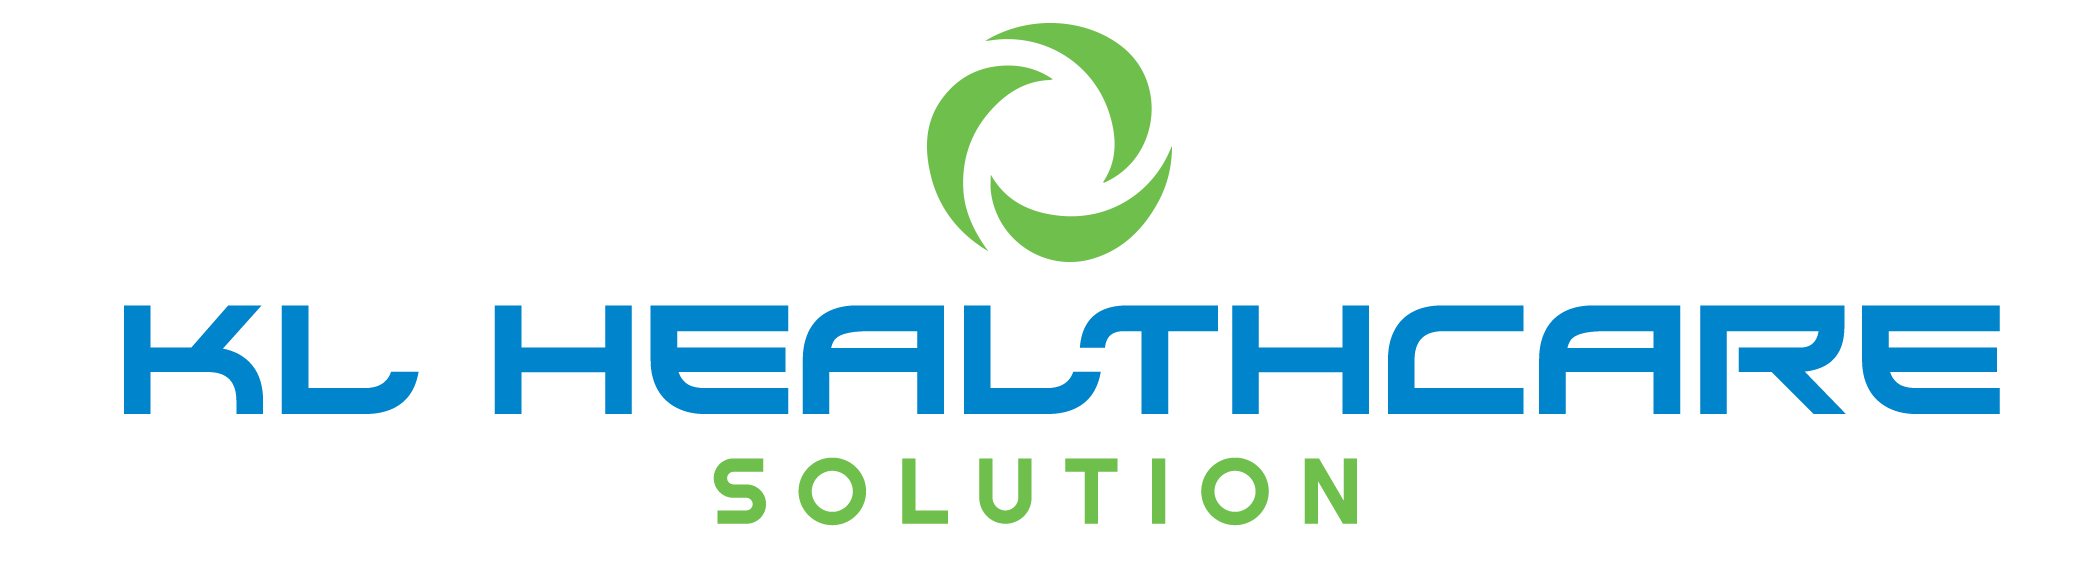 KL HealthCare Solution